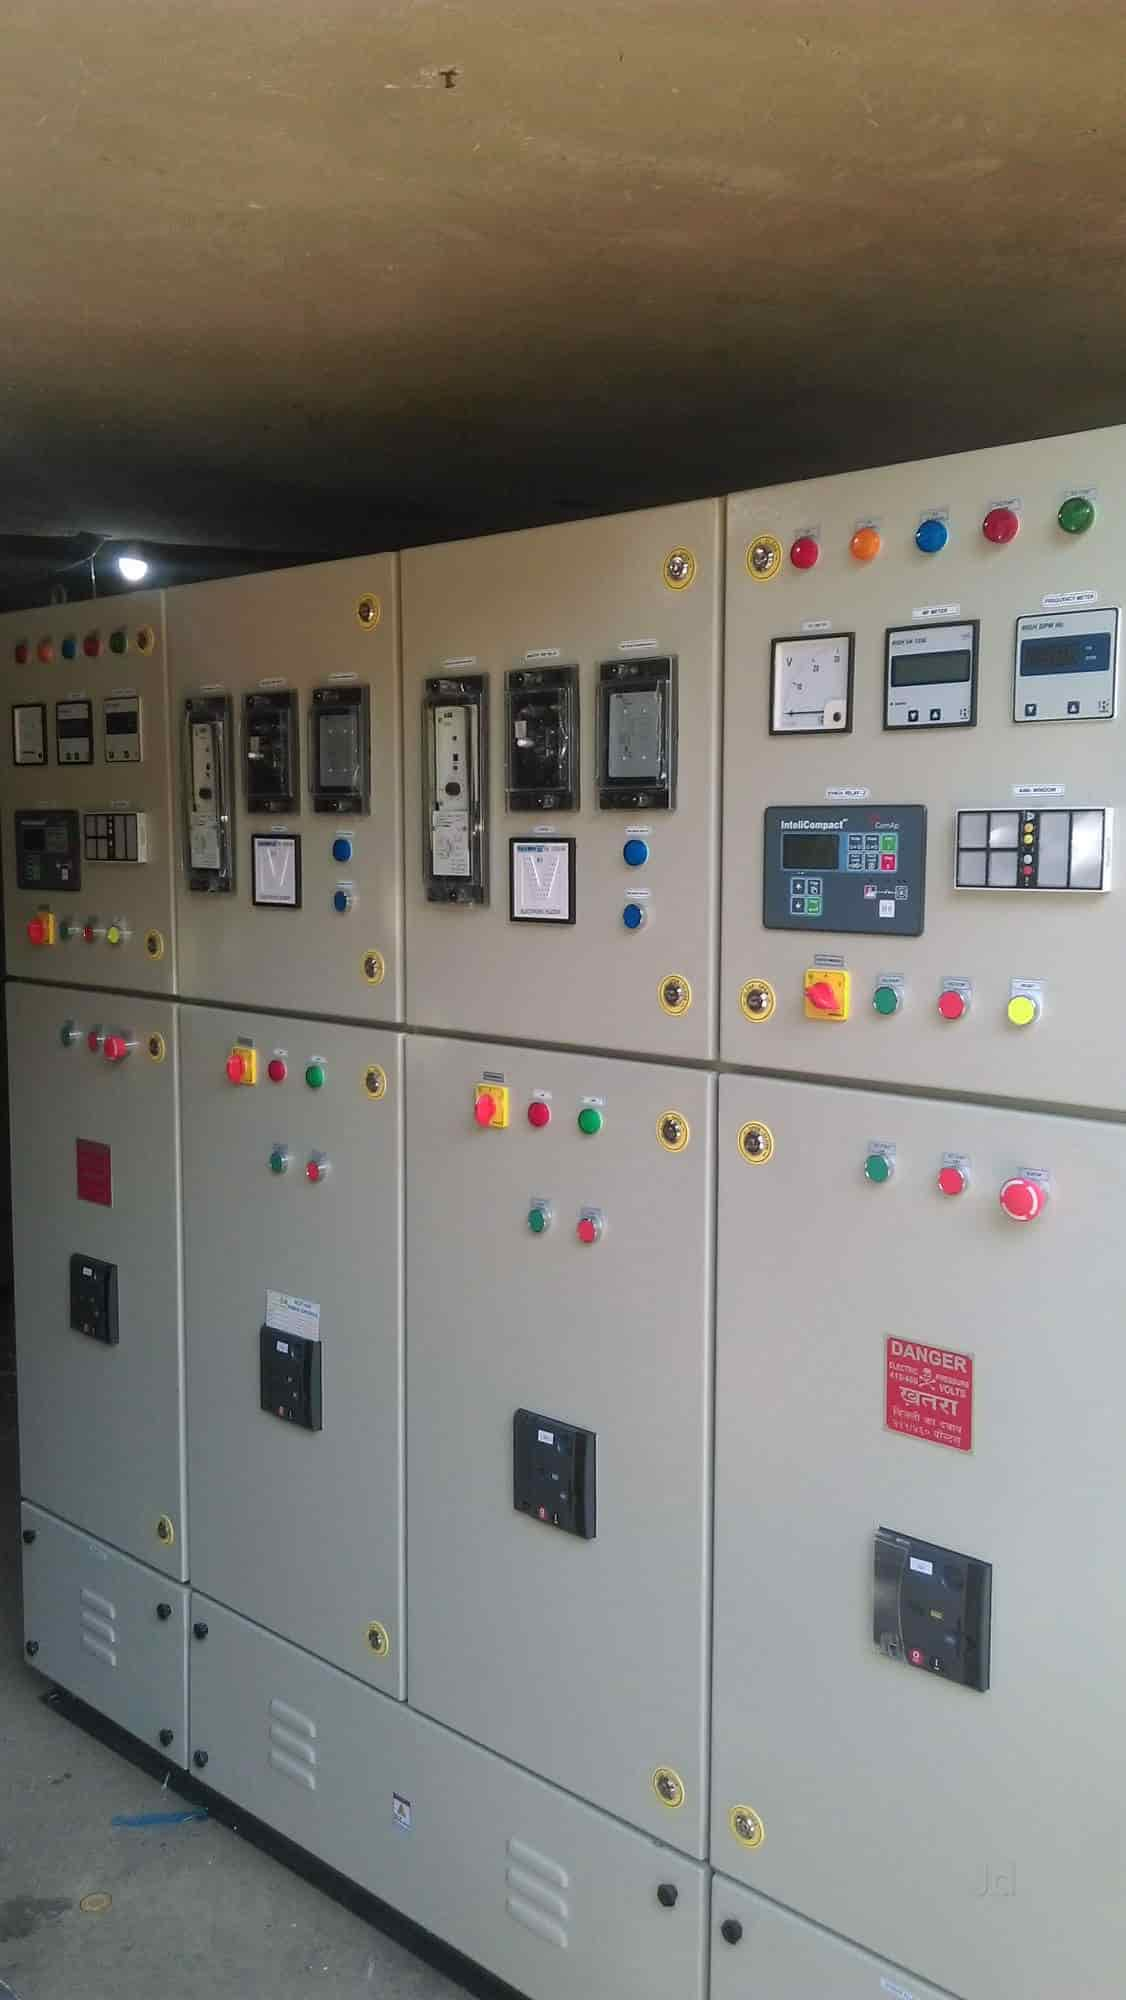 Enchanting Pump Panel Wiring Diagram Image - Everything You Need to ...